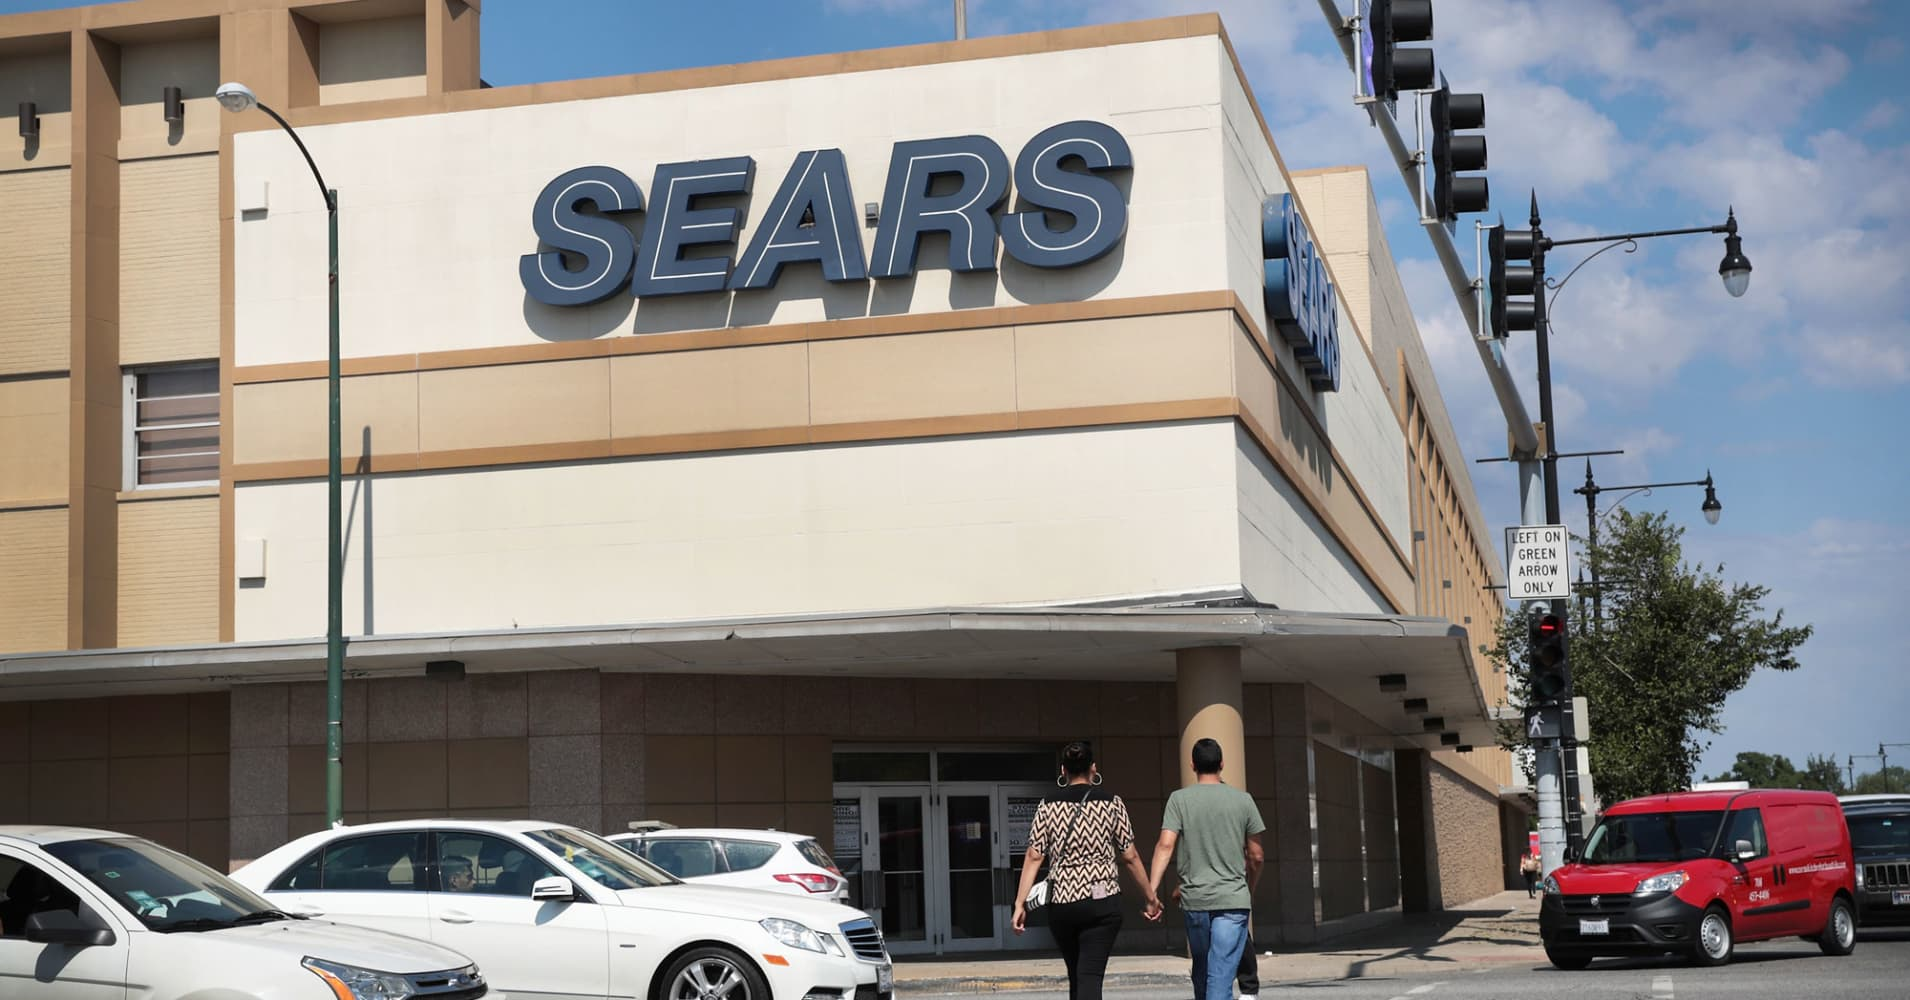 Here are 5 things Sears got wrong that sped its fall